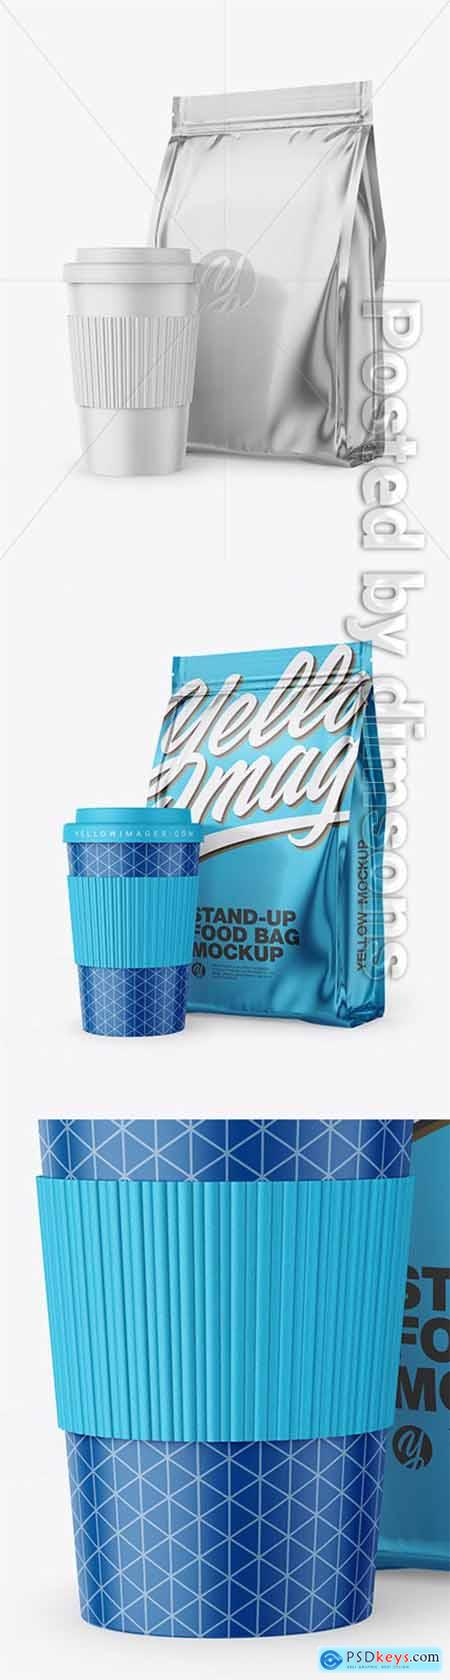 Metallic Stand-Up Bag with Coffee Cup Mockup 65091